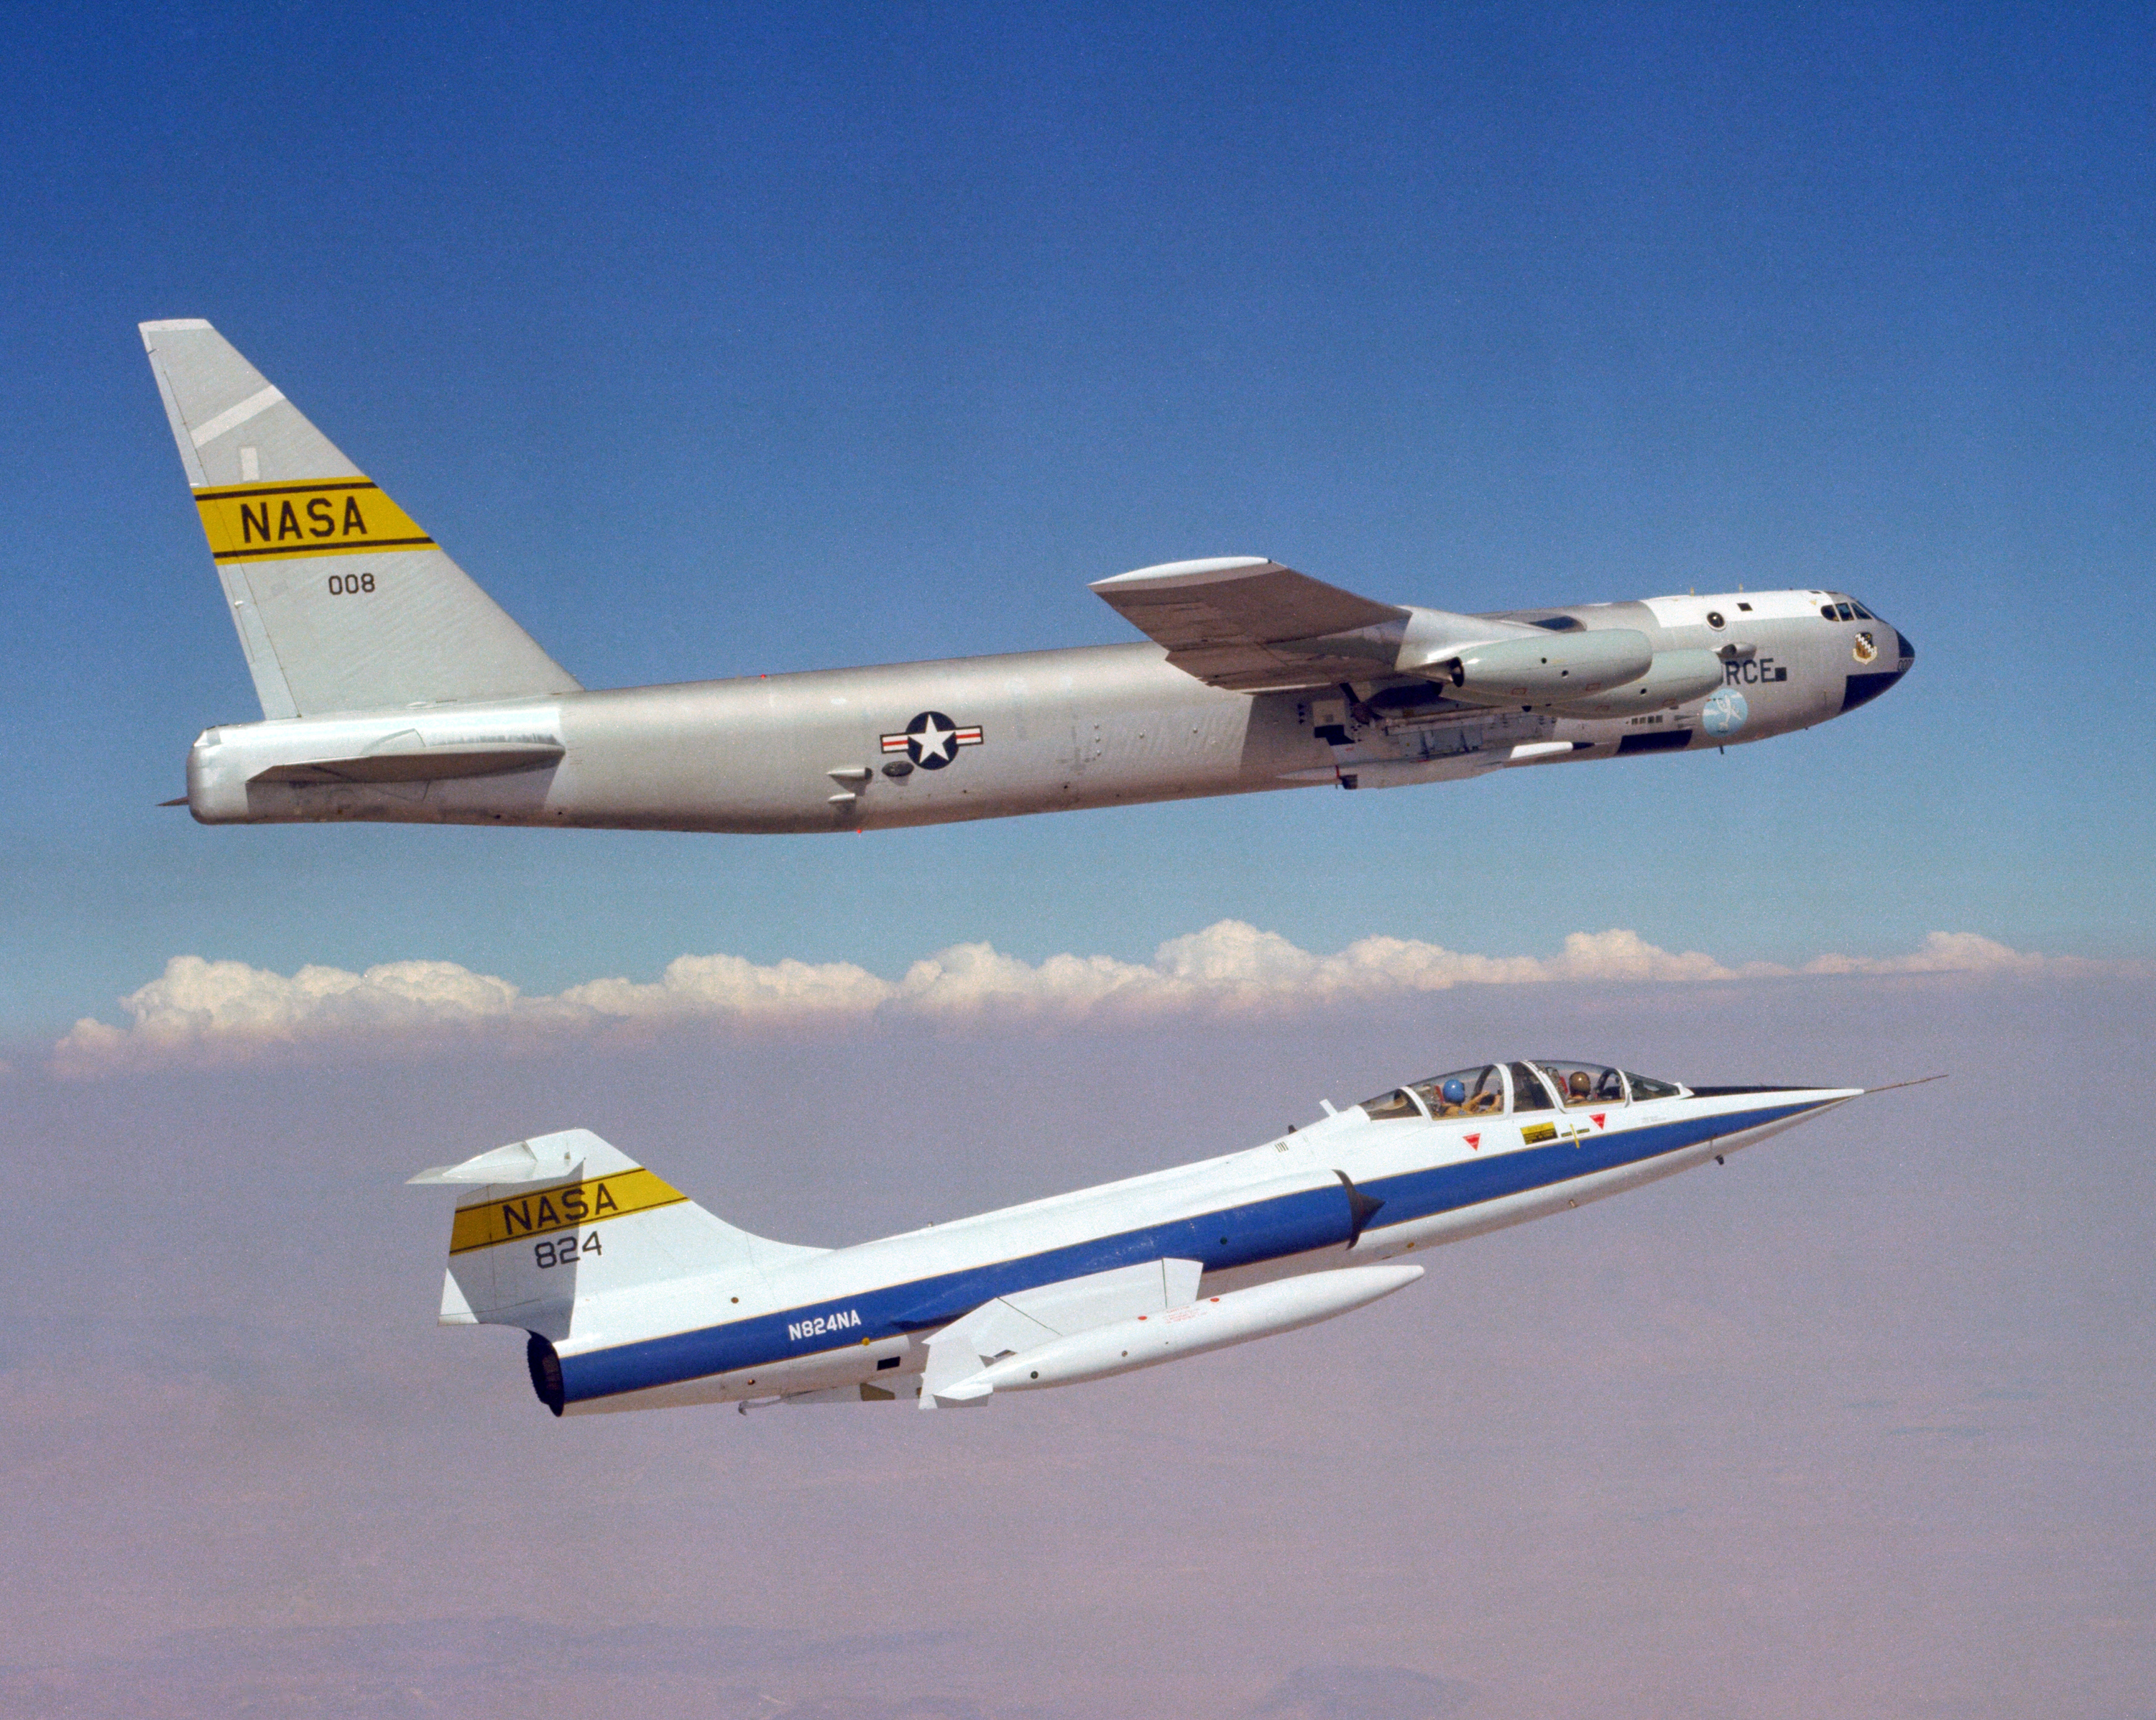 A NASA Lockheed TF-104G Starfighter flies chase on the NASA Boeing NB-52B